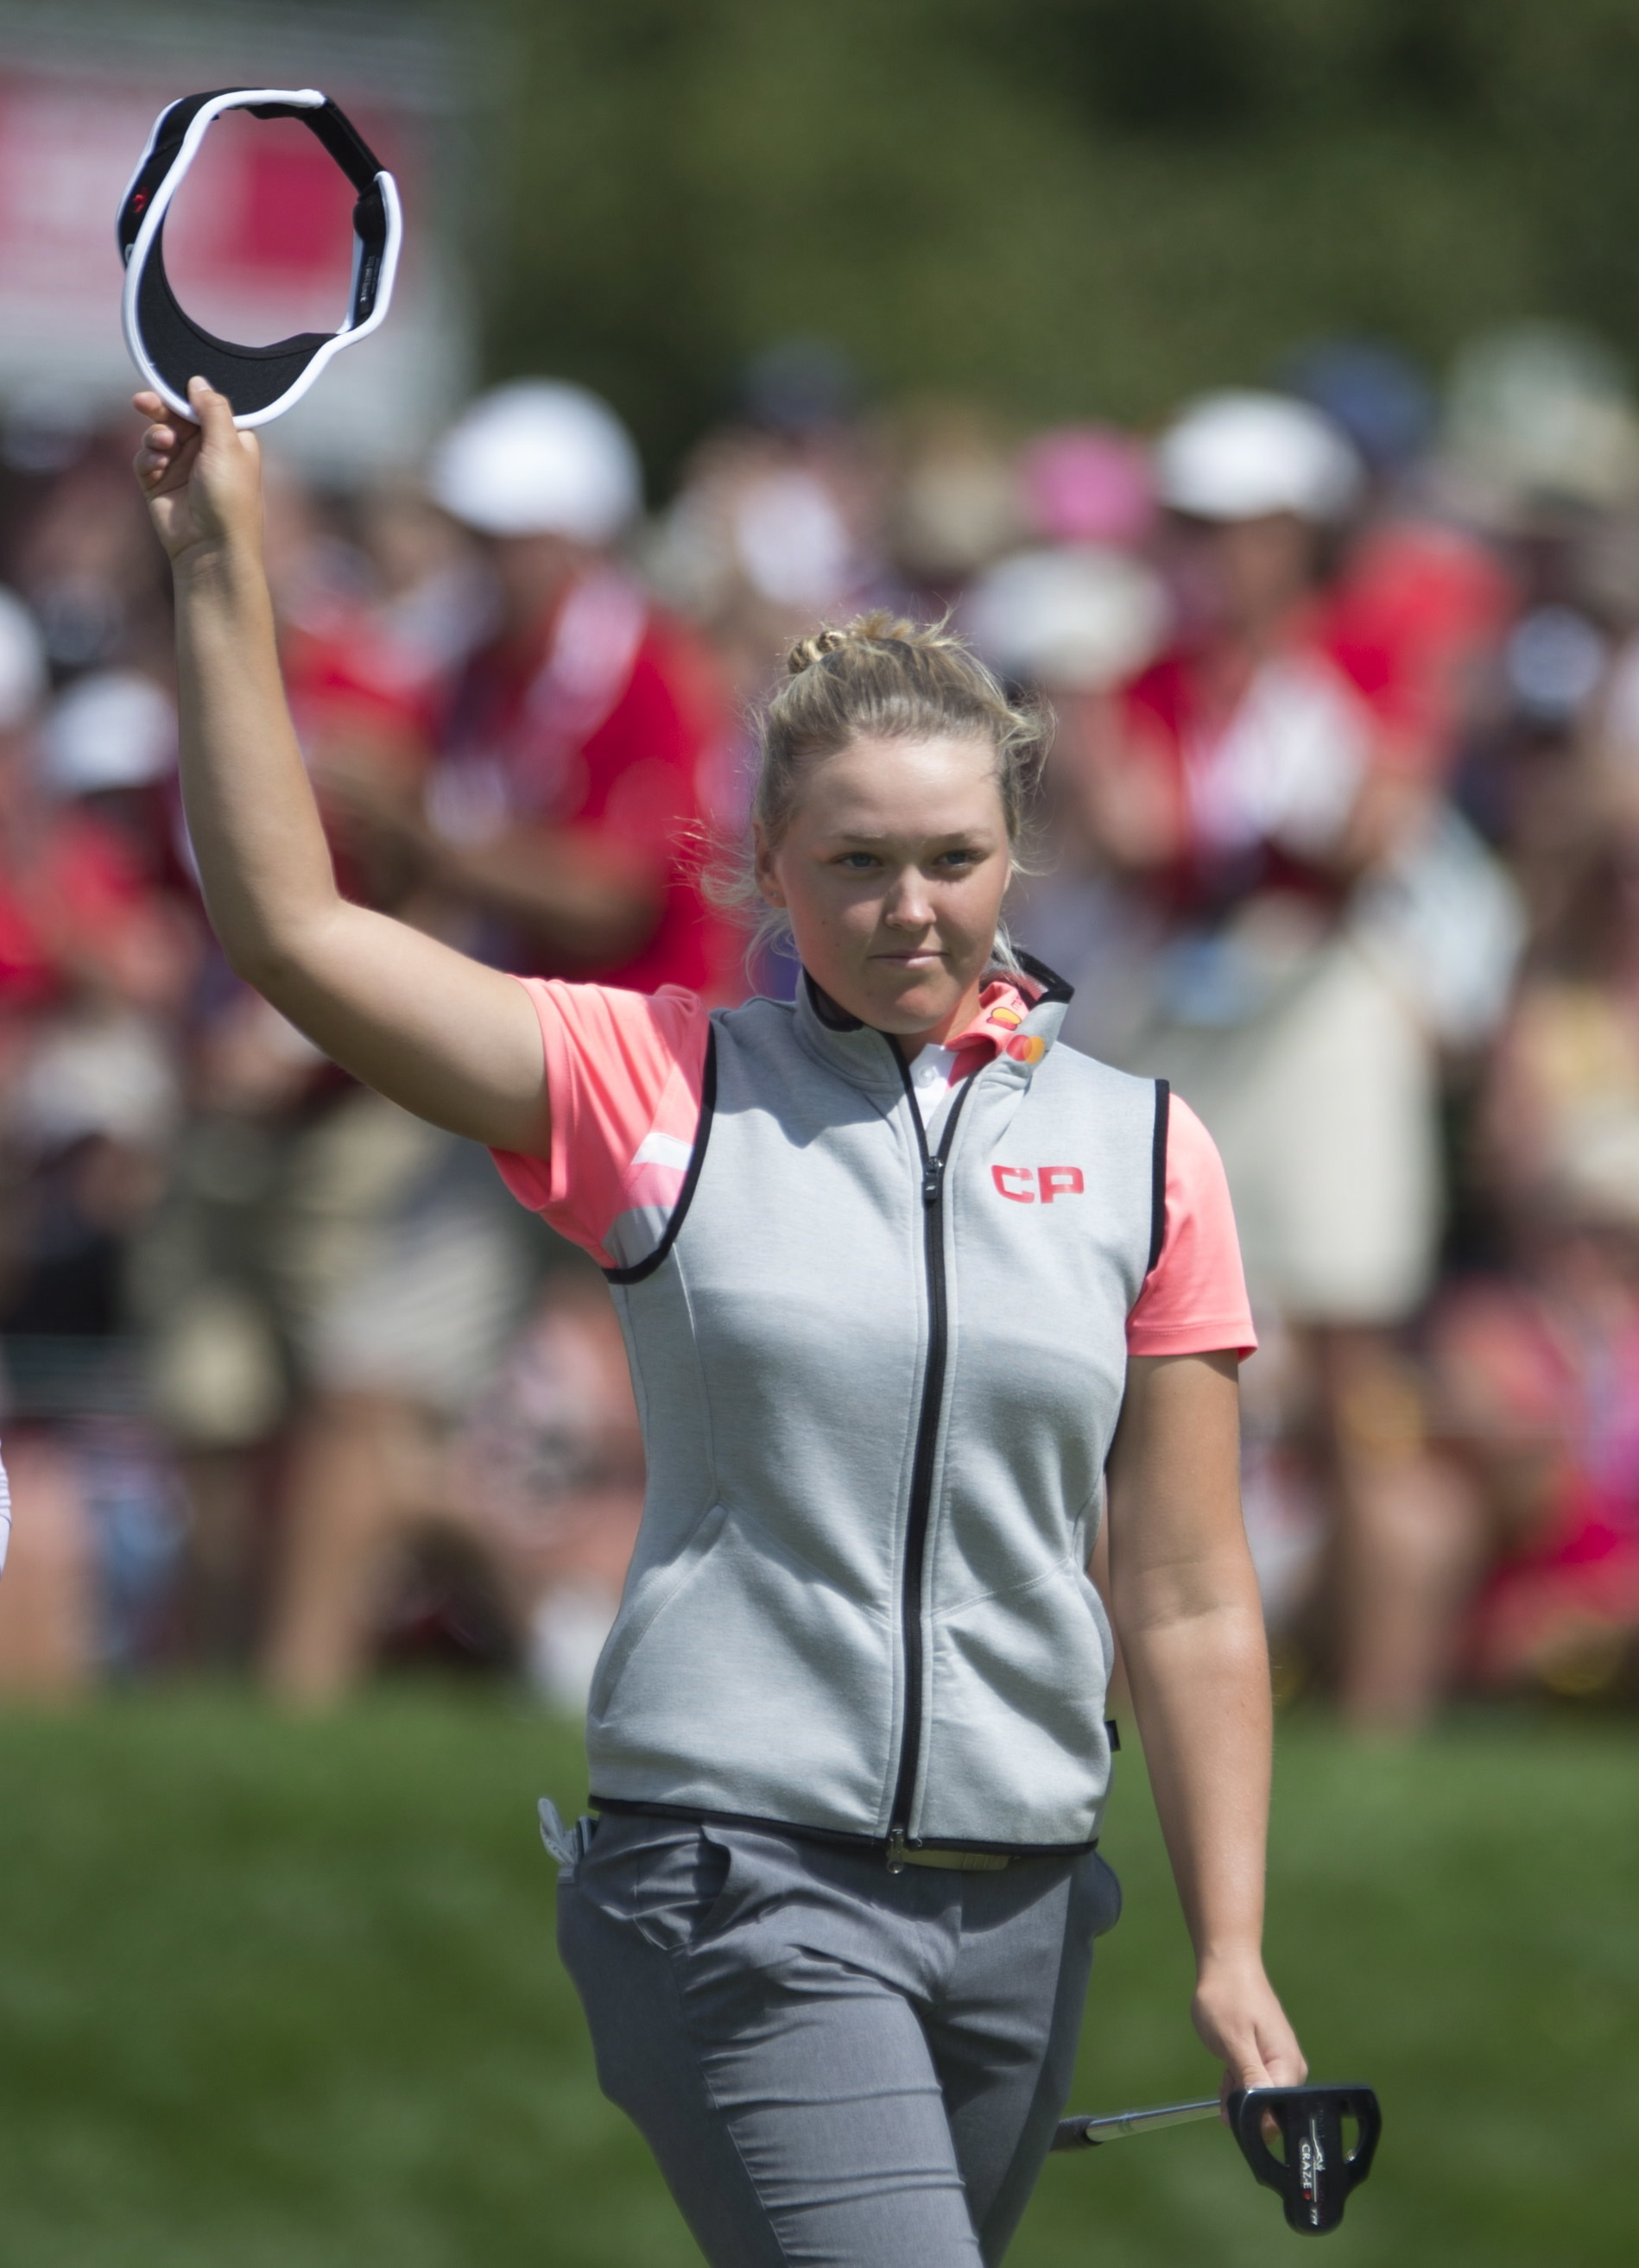 Canada's Brooke Henderson acknowledges the gallery after sinking a putt on the 18th green during third round play at the Canadian Pacific Women's Open in Ottawa, Saturday, Aug. 26, 2017. Henderson shot 8-under par Saturday to move up the standings. (Adria